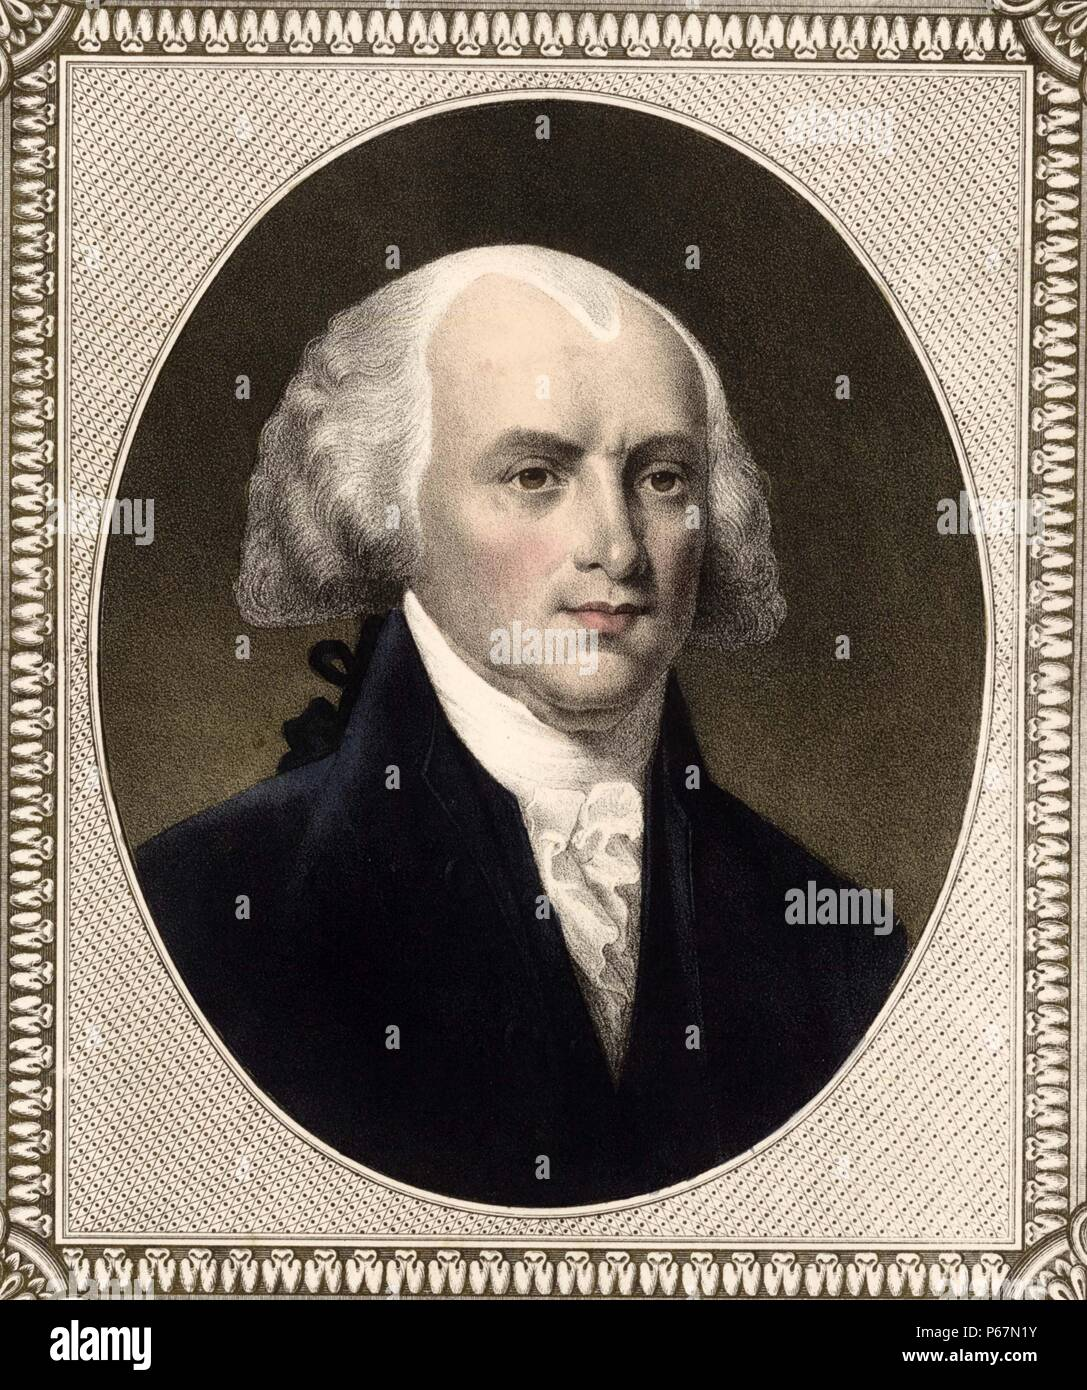 James Madison (1751-1836) was an American statesman and political theorist who served as the fourth President of the United States. He is thought of as the 'Father of the Constitution' thanks to his role in drafting the United States Constitution and writing of the United States Bill of Rights. - Stock Image